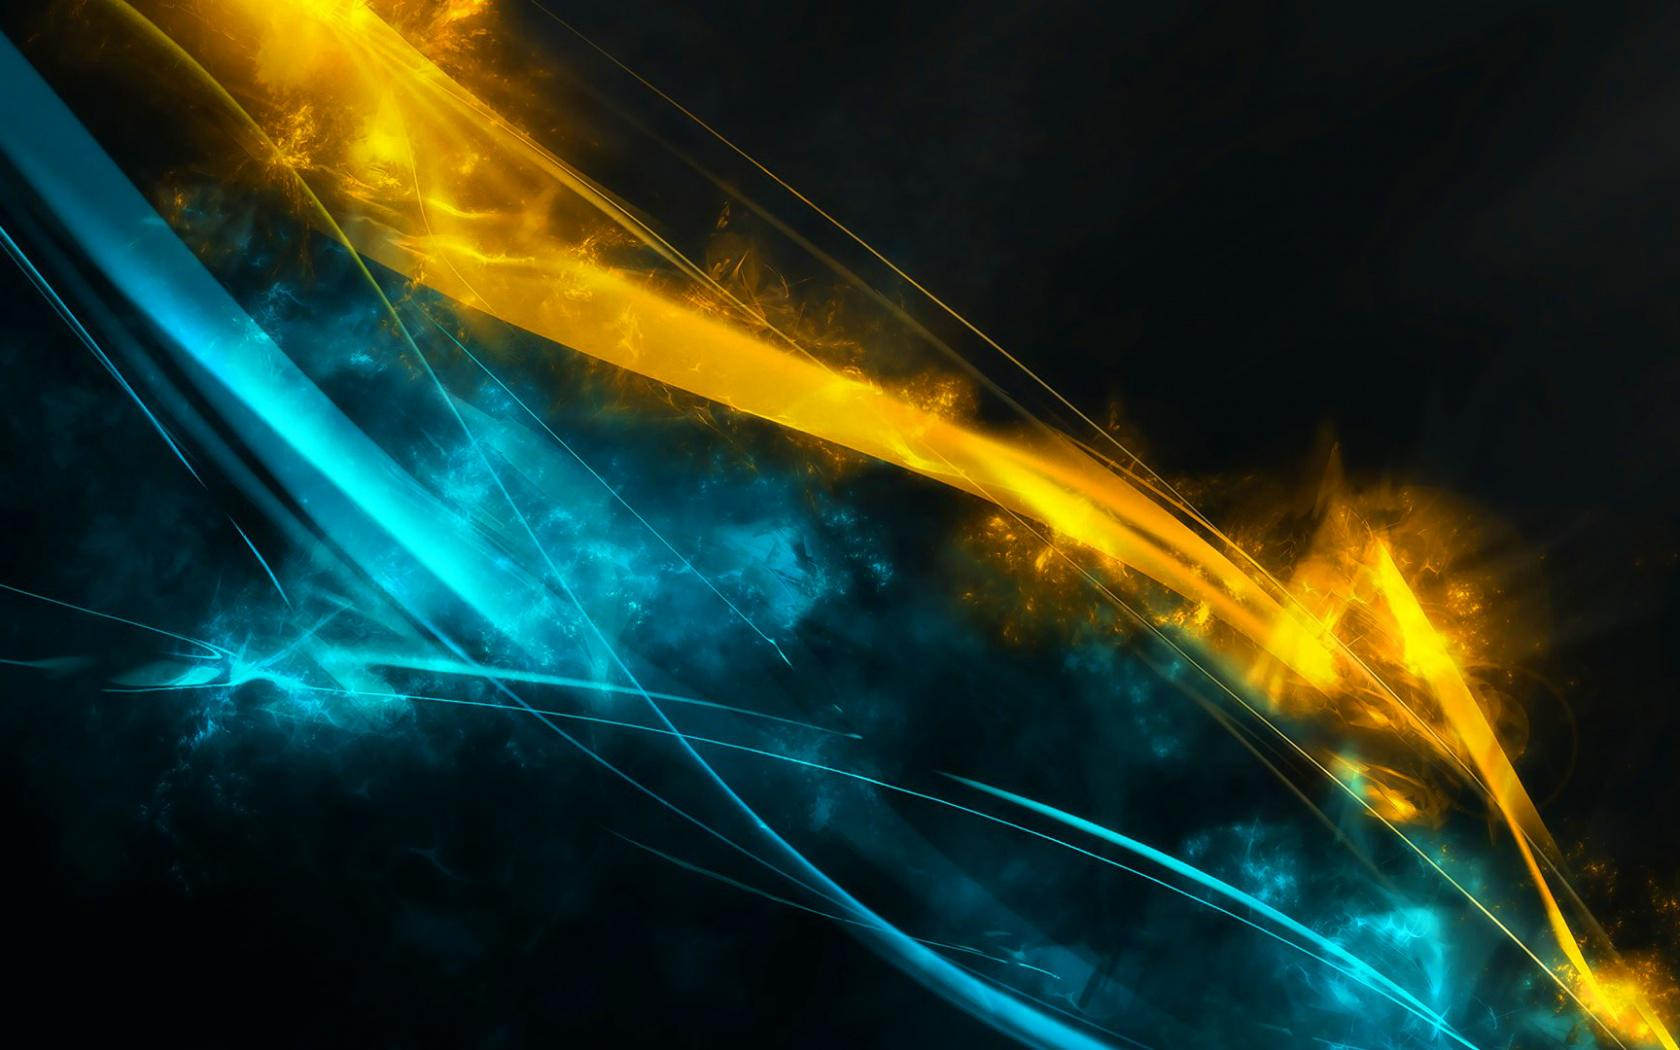 Blue & Yellow Streaks Free Download